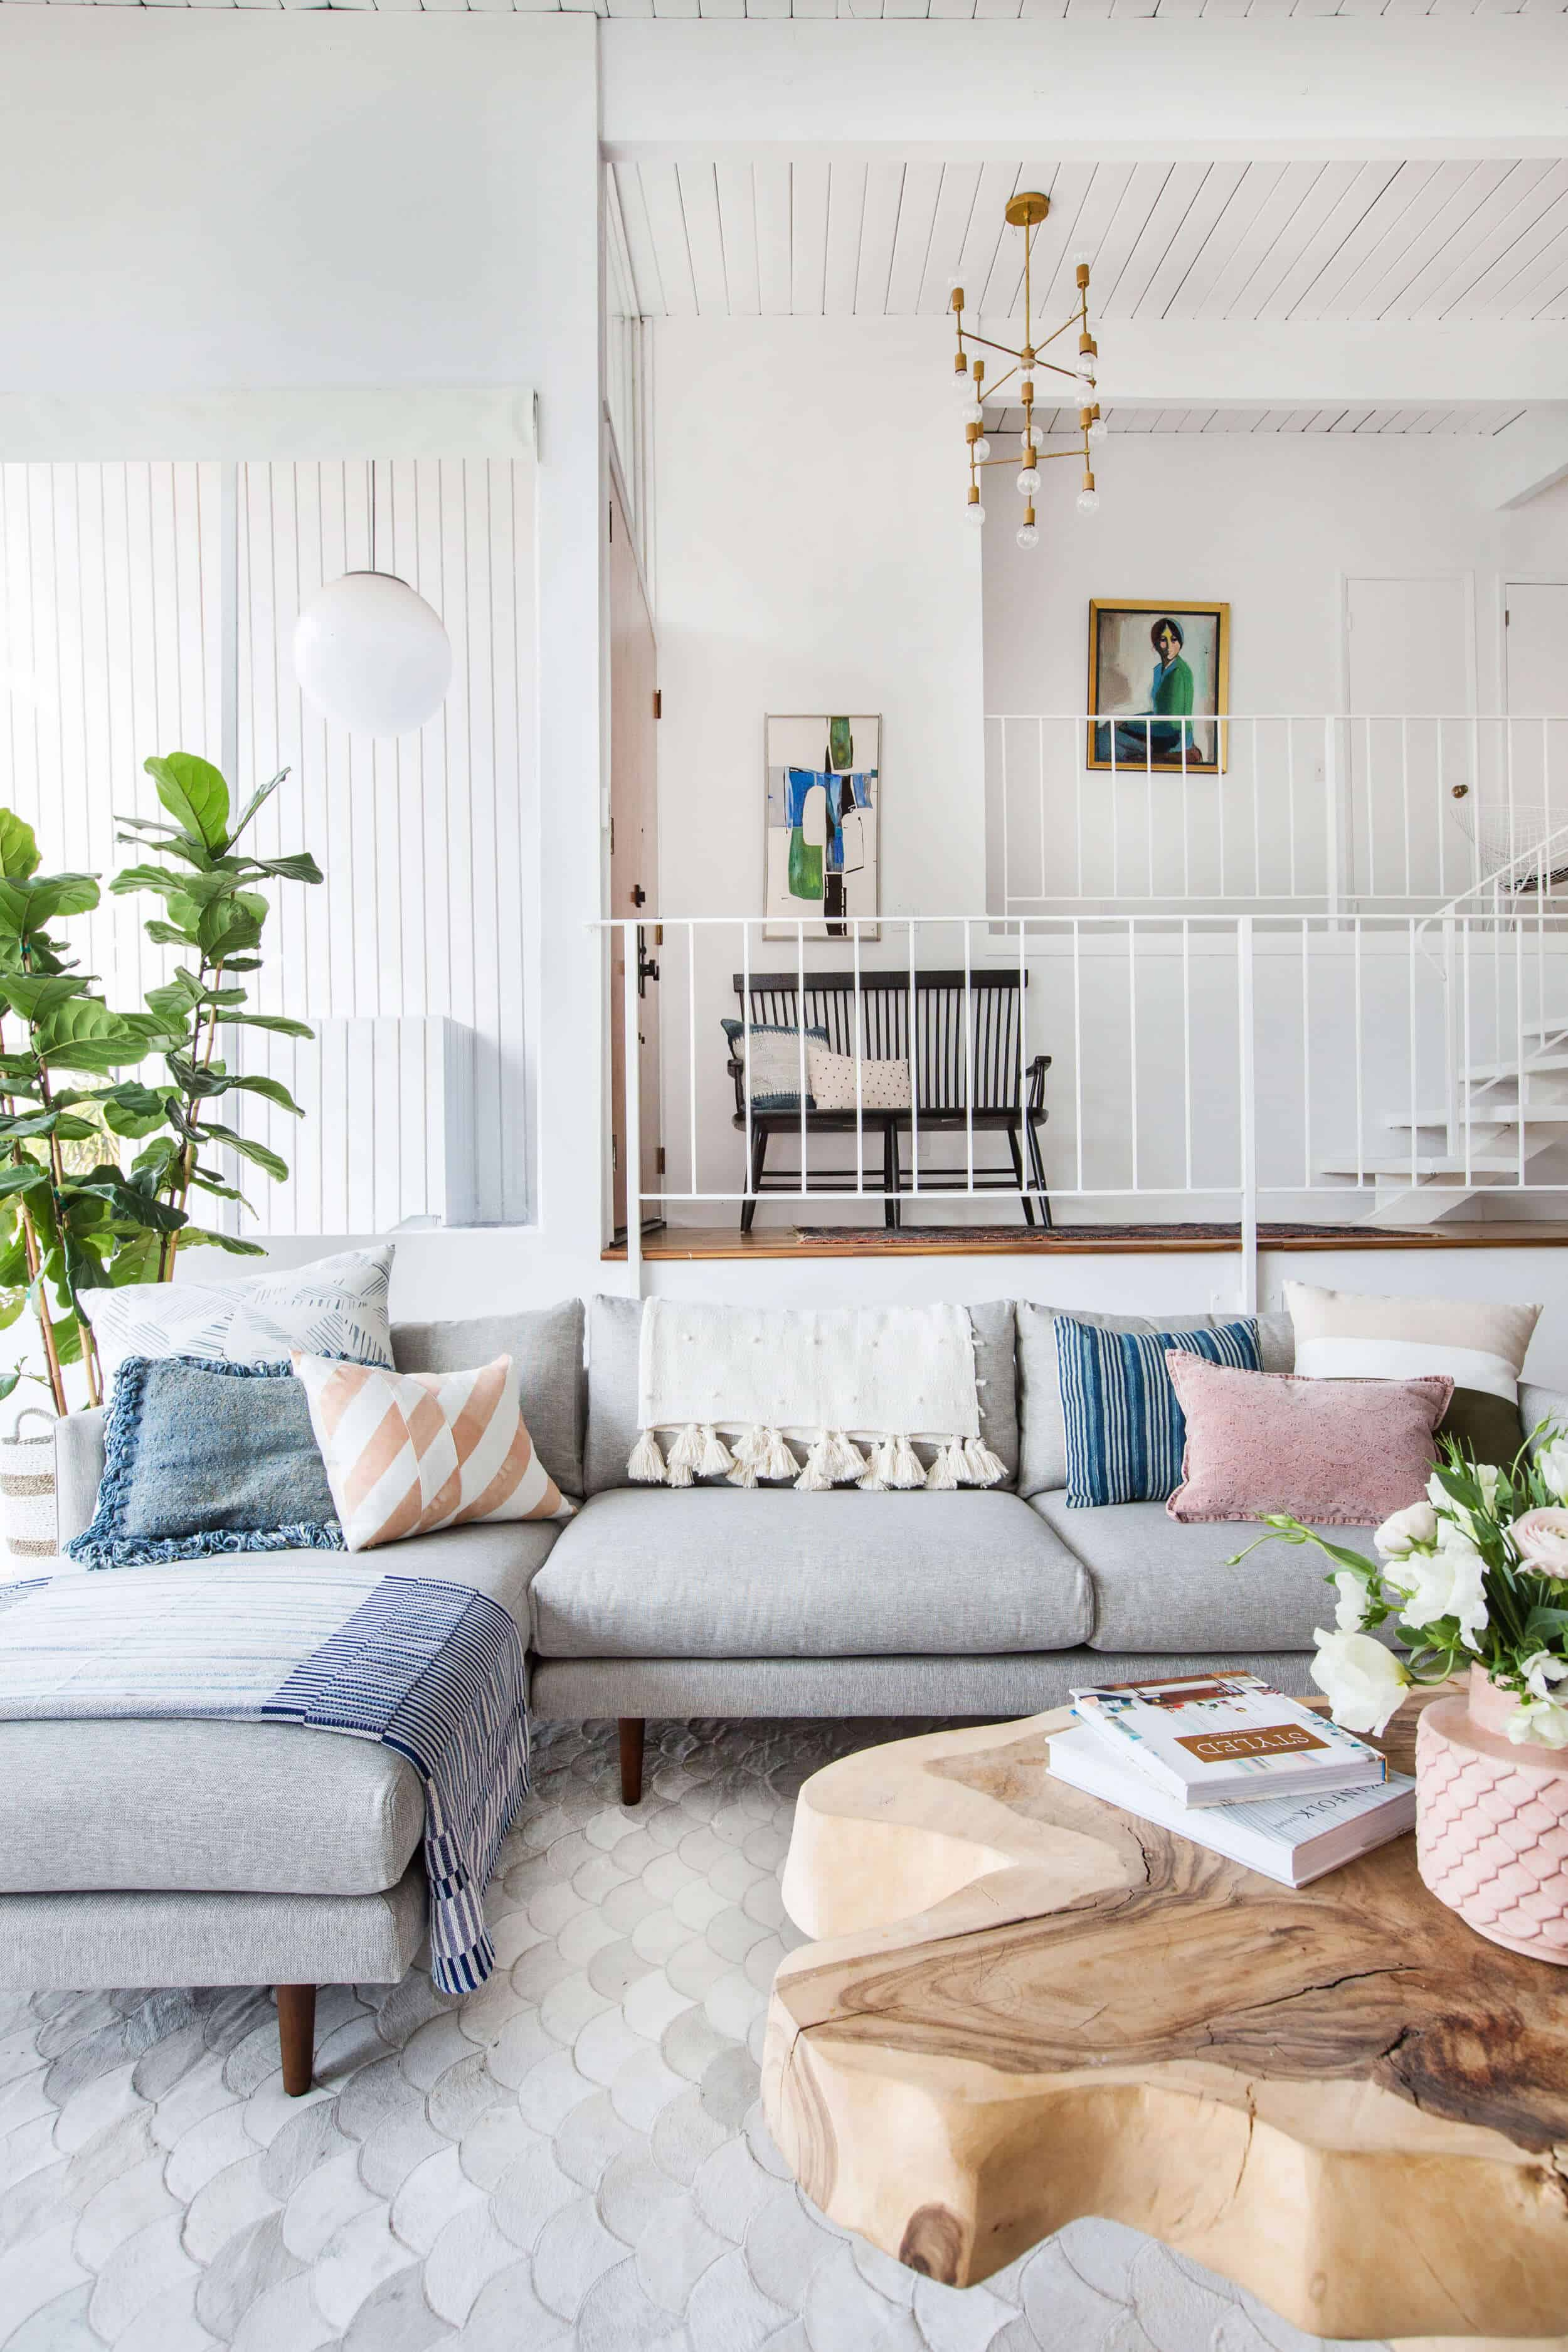 Emily Henderson_Living Room_Staged To Sell_Boho_Mid Century_Eclectic_Blue_White_Styled_Couch_Sectional_Staged4